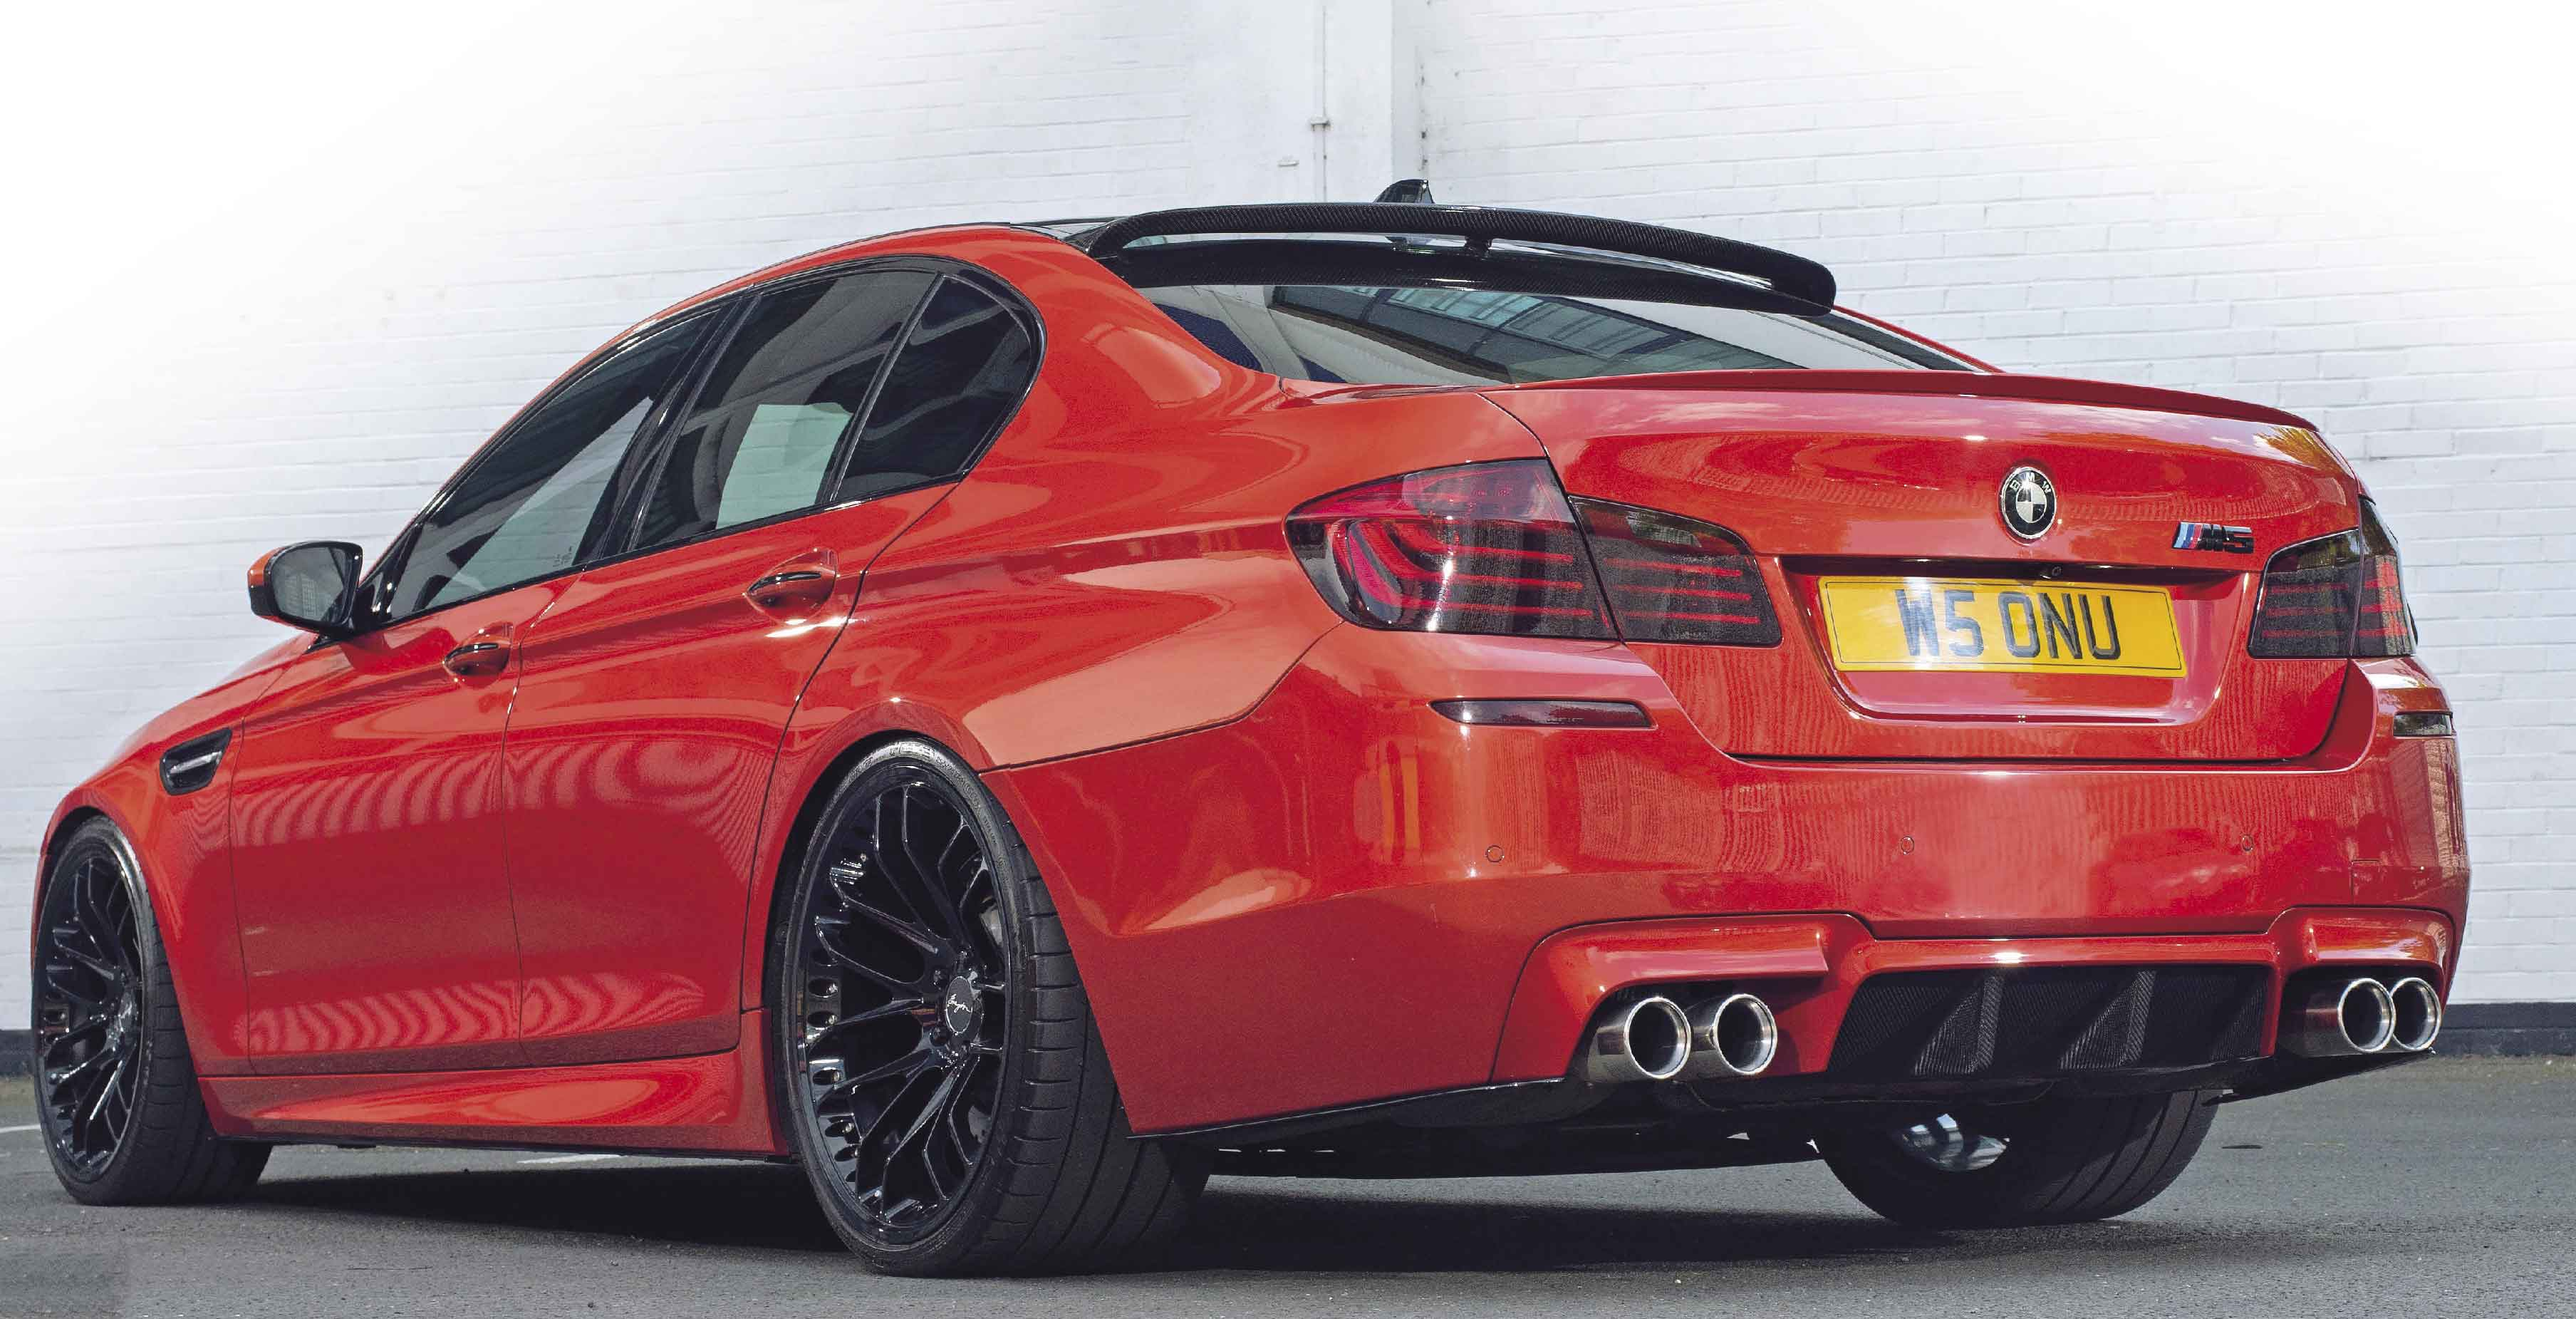 Tuned 650hp Bmw M5 F10 Drive My Blogs Drive